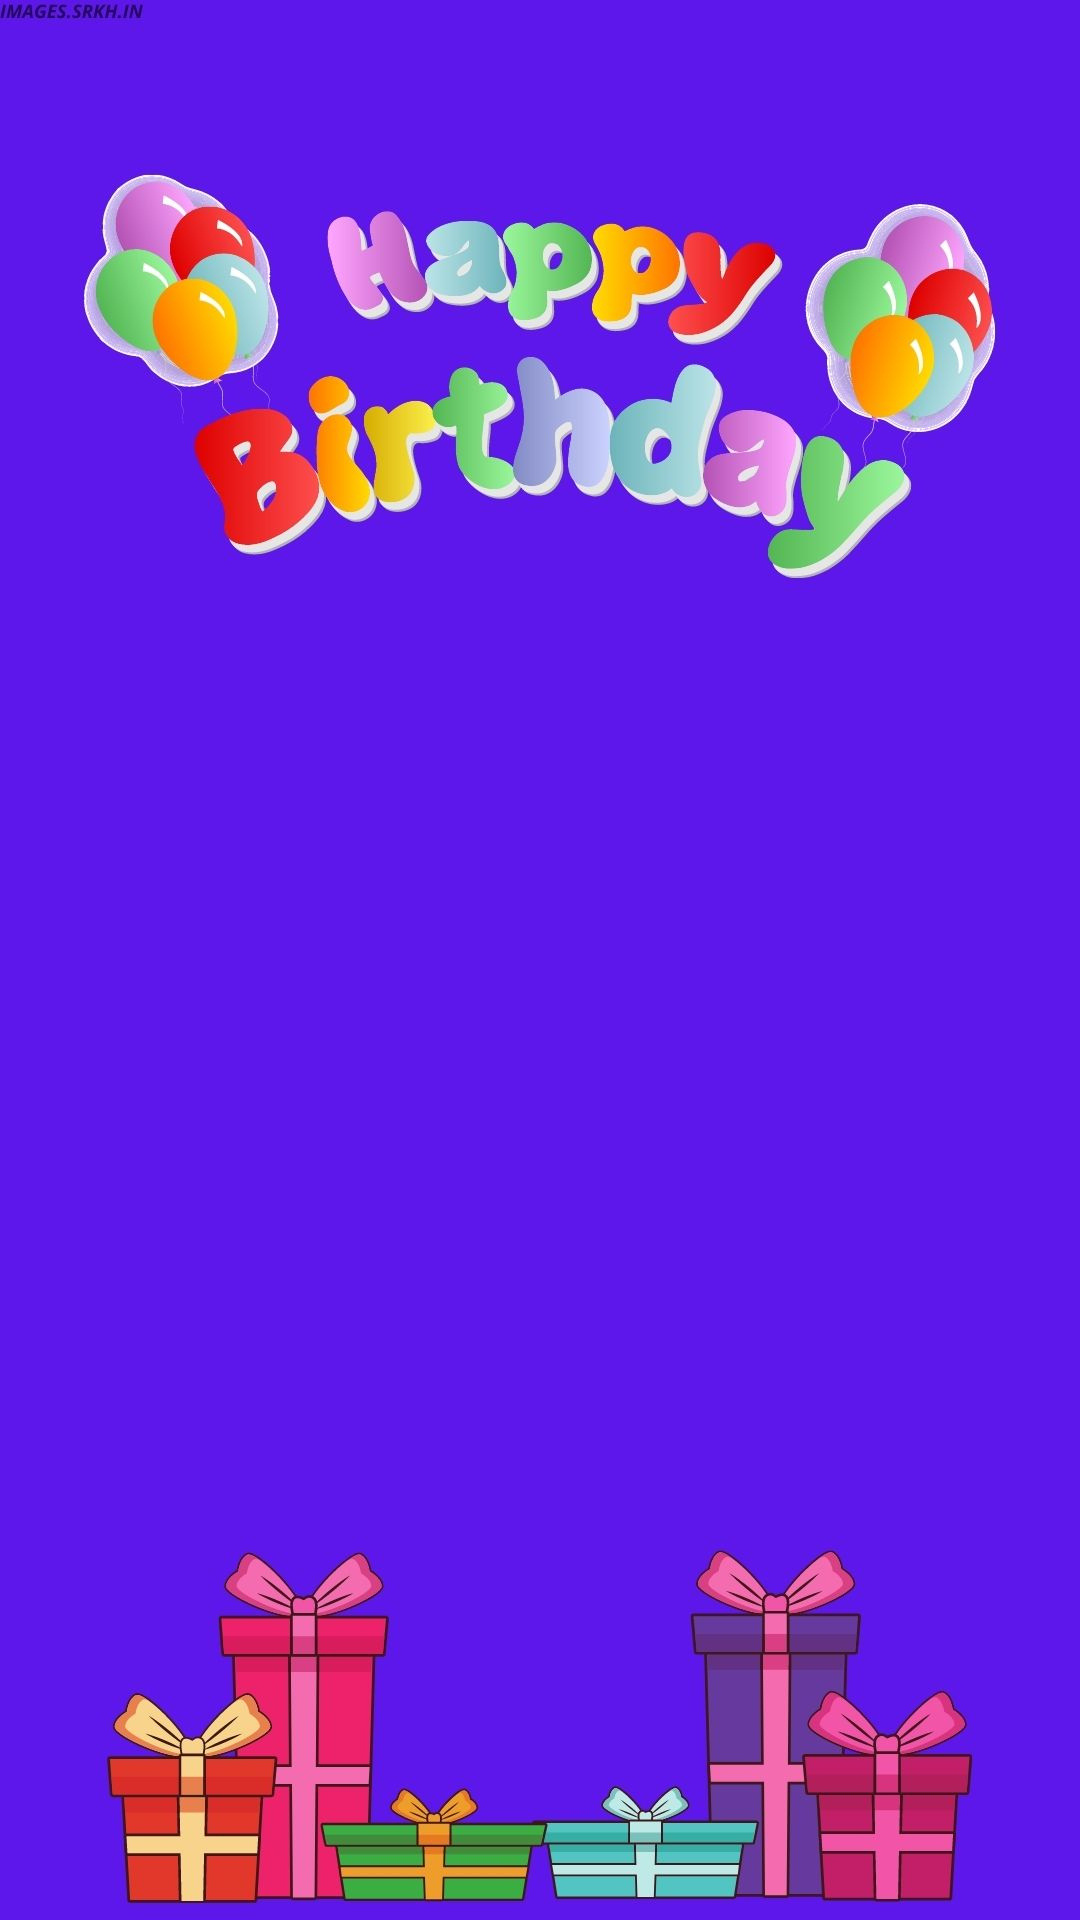 Happy Birthday Wallpaper Images Hd Download Free Images Srkh